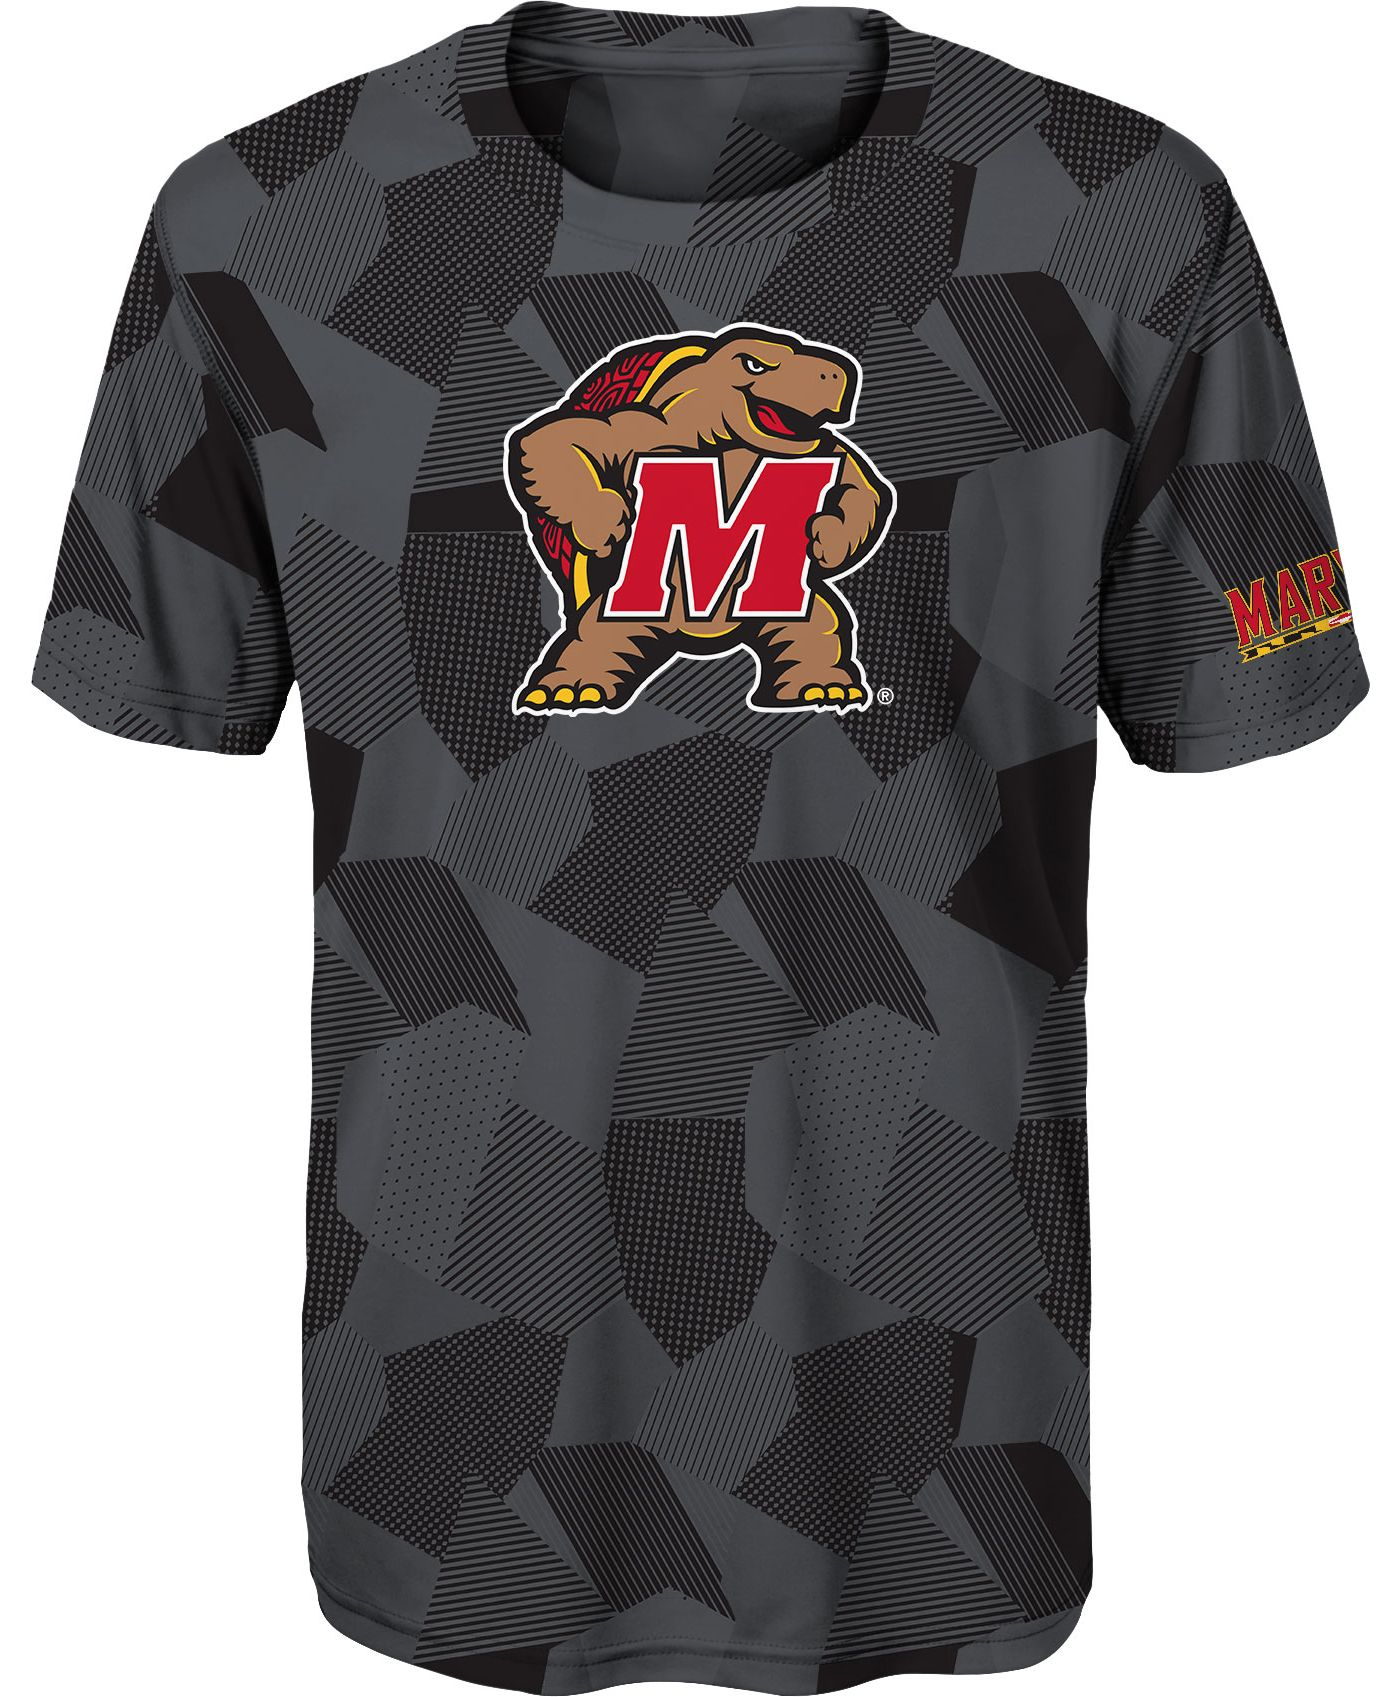 Gen2 Youth Boys' Maryland Terrapins Grey Sublimated Print Stadium T-Shirt